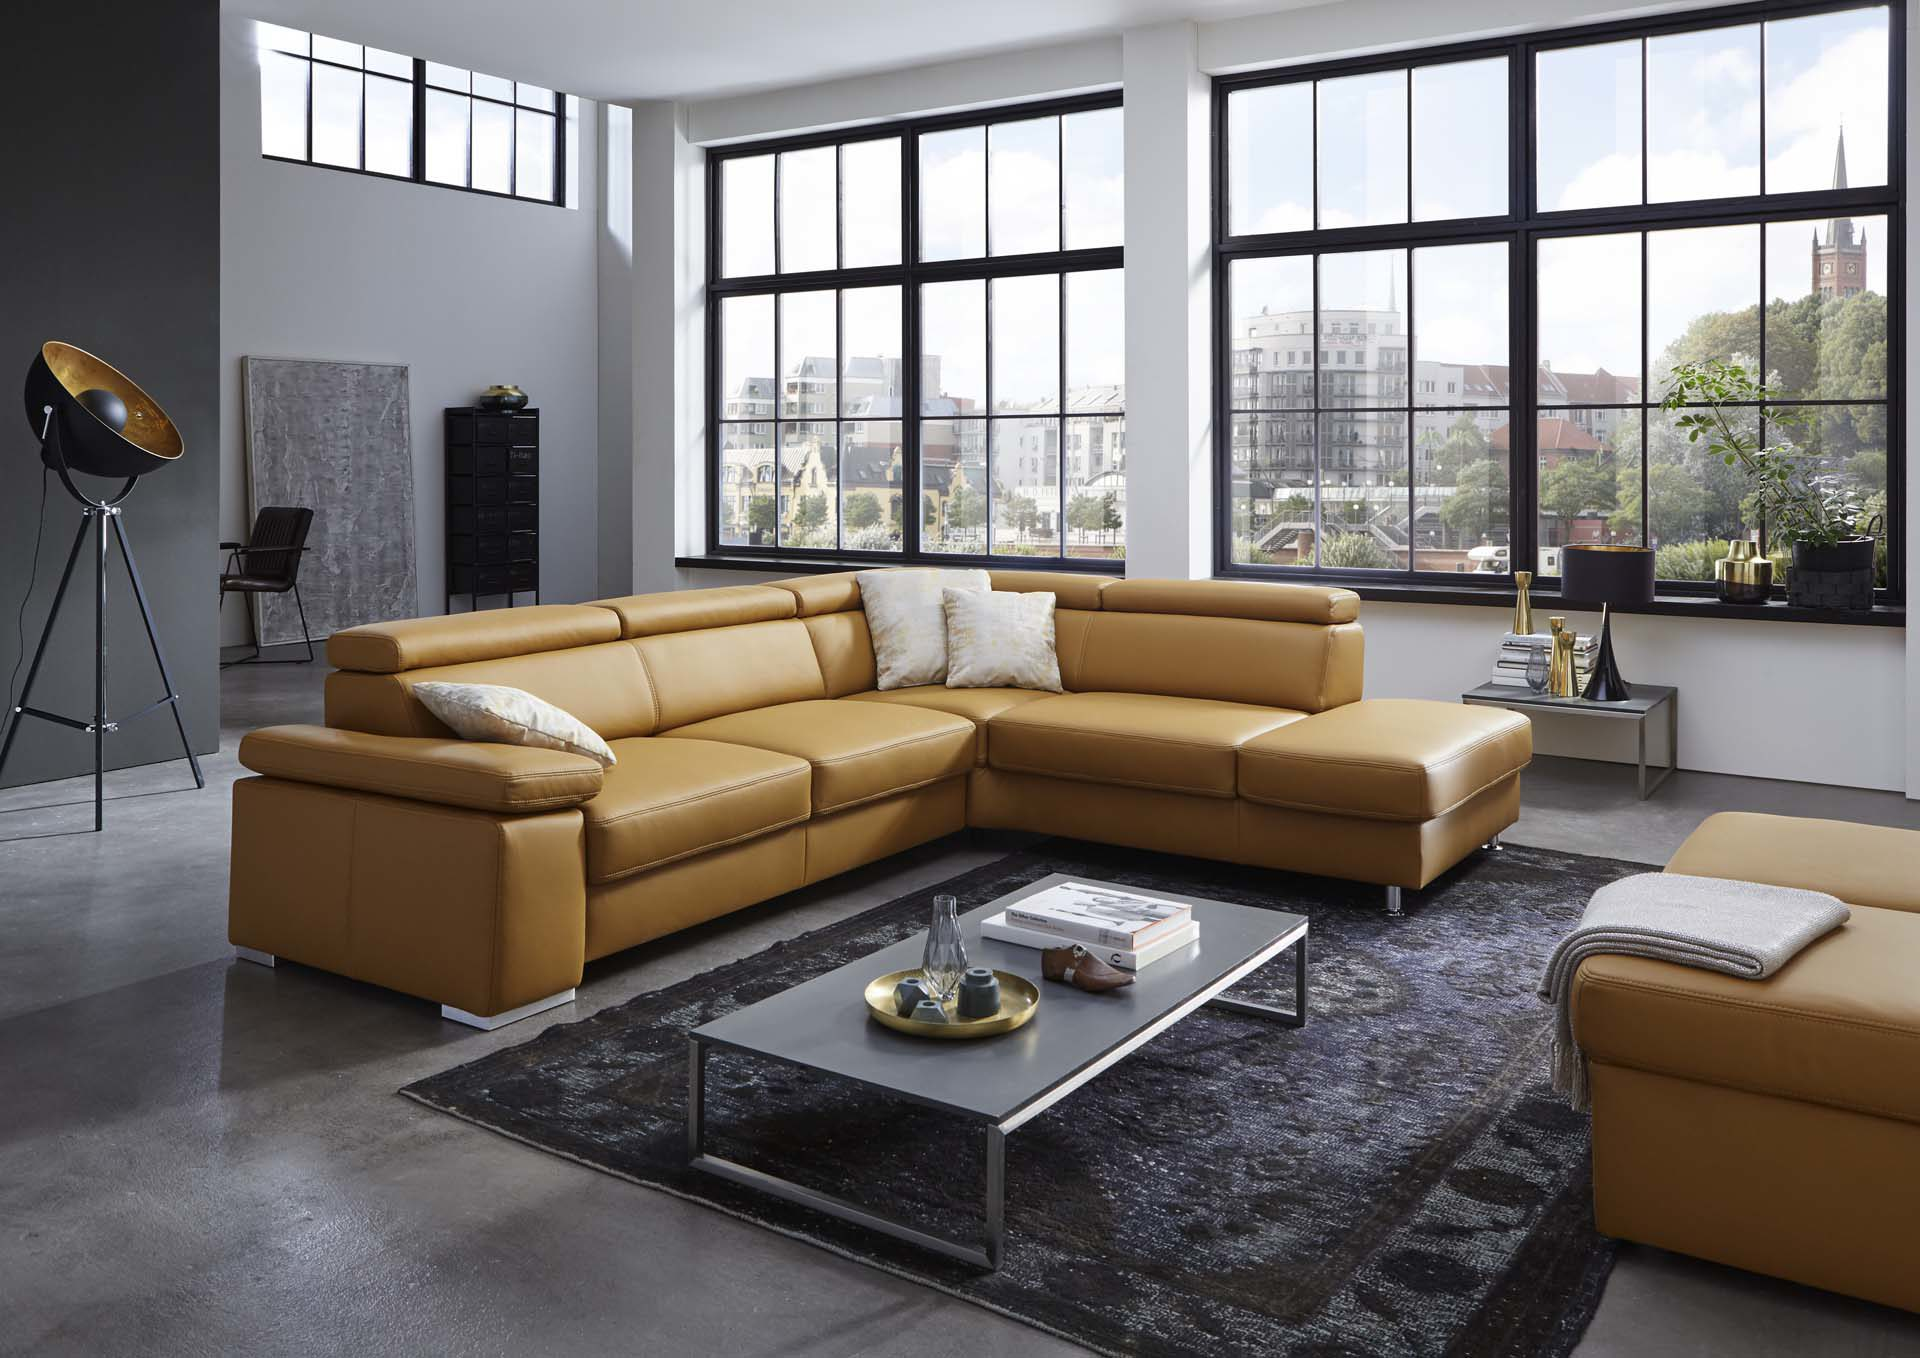 Amazing Affordable Beautiful Mbel Boer Coesfeld Rume Wohnzimmer Sofas  Couches Modulmaster Cancun L Gnstiger In Gelb Leder Vivre U Alufe With  Modul Sofa ...